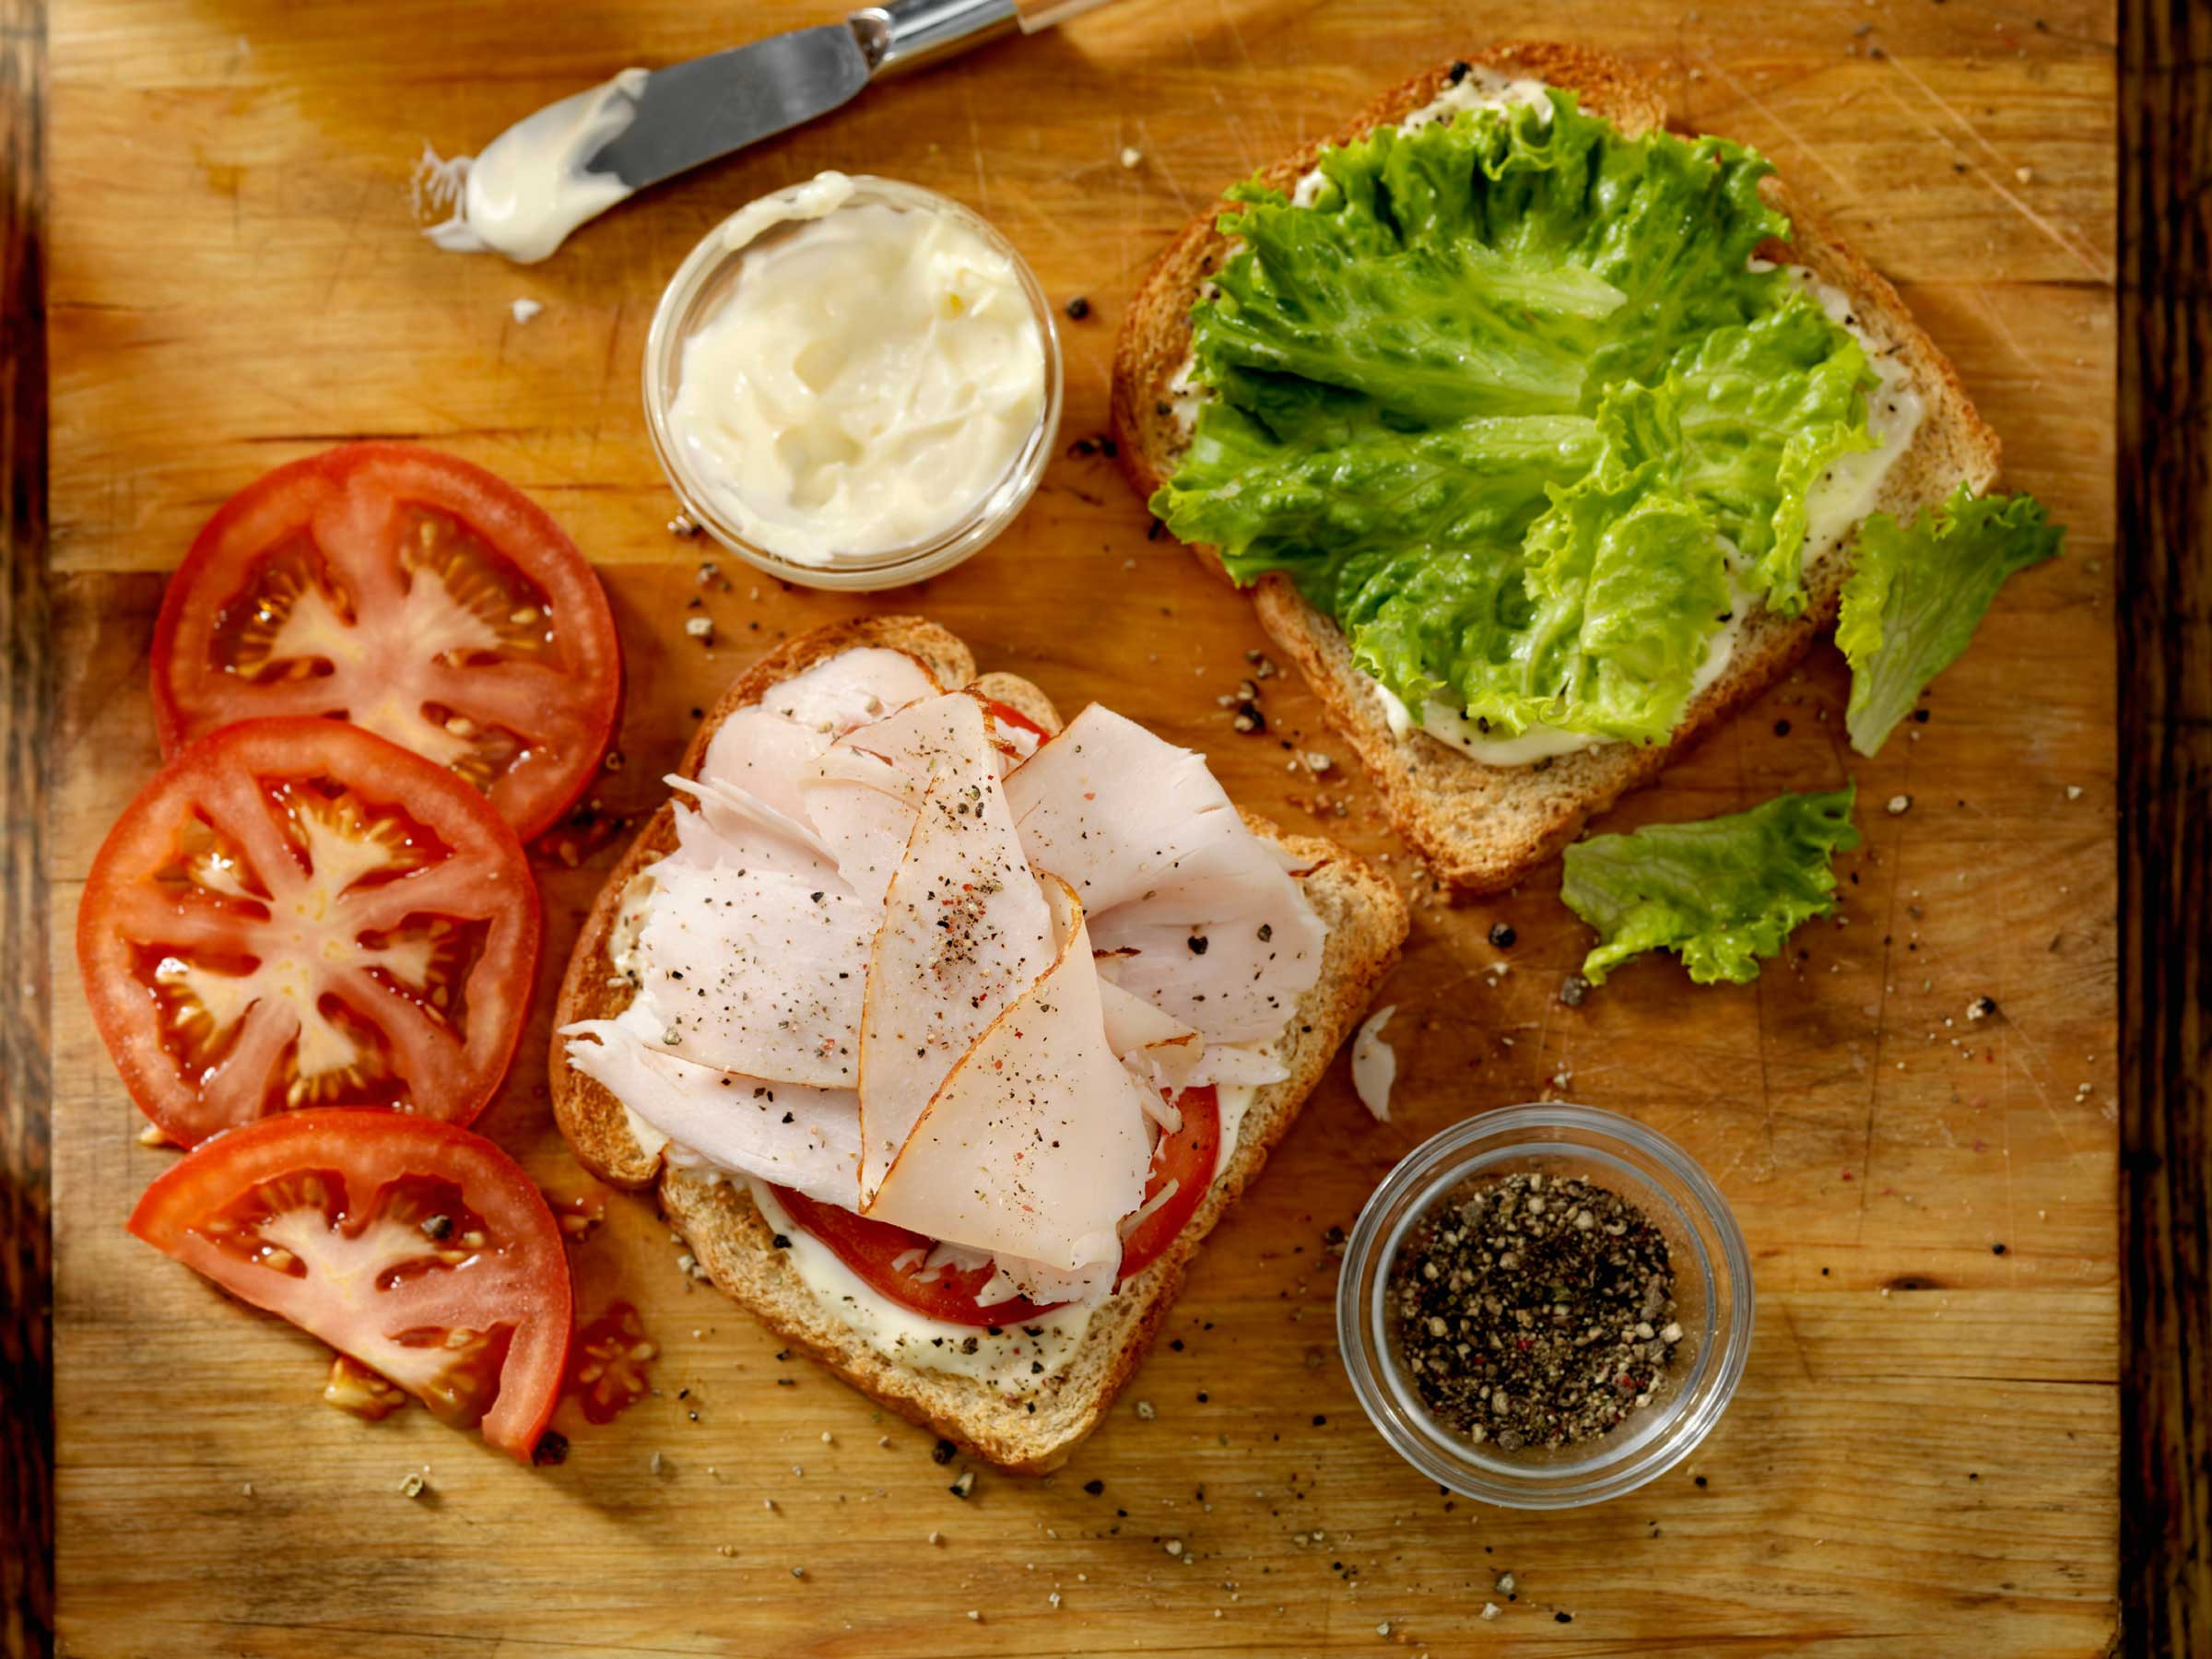 Healthy Sandwich Recipes For Weight Loss  Healthy Sandwiches for Weight Loss